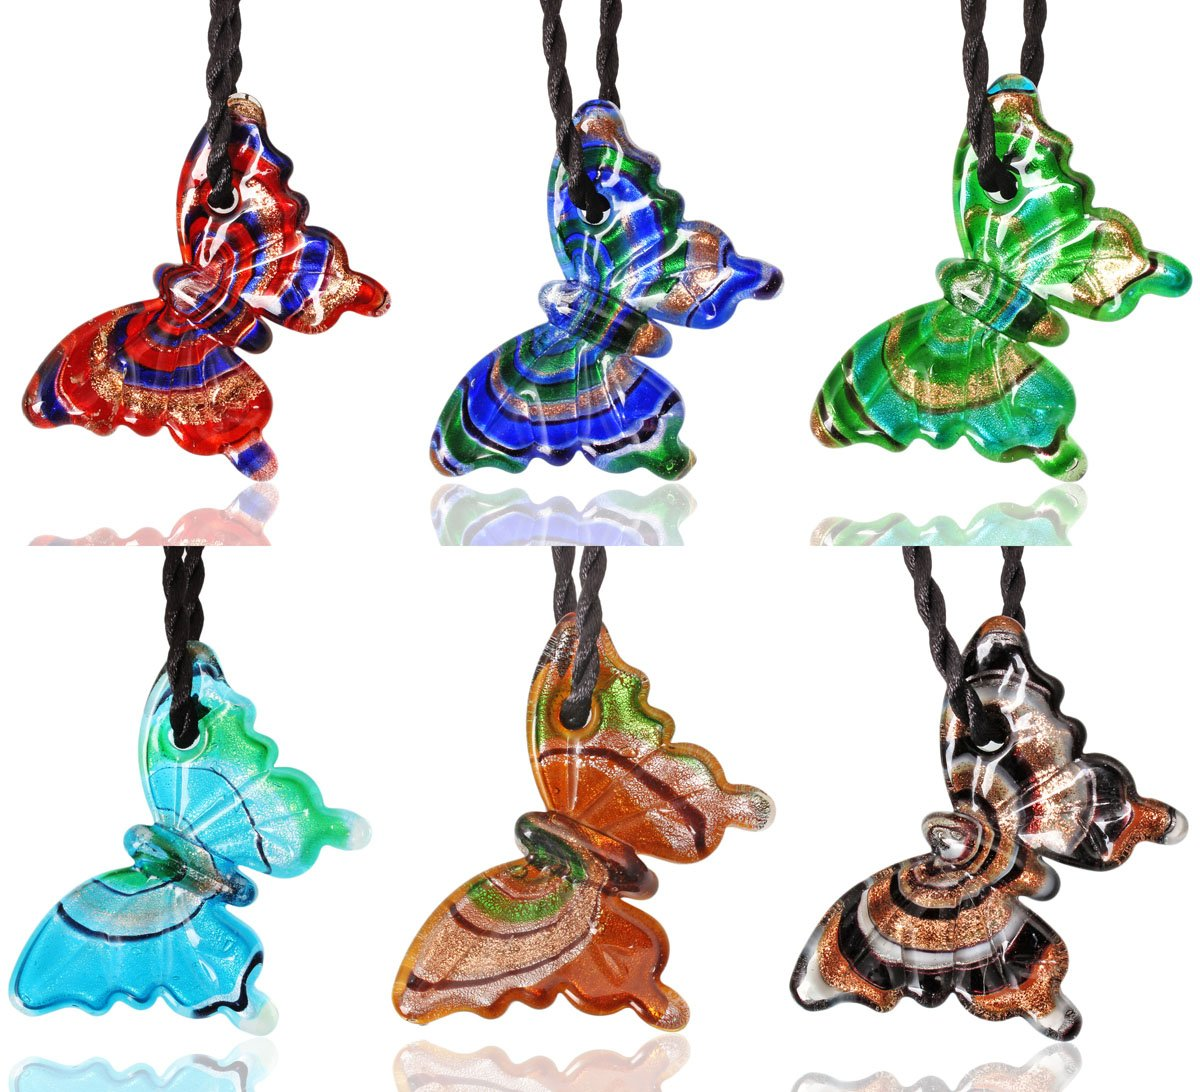 CCSC-PEC Butterfly Gold Sand Lampwork Glass Pendant Necklace 6pc Mixed Set with 19.7'' Black Cord by CCSC-PEC